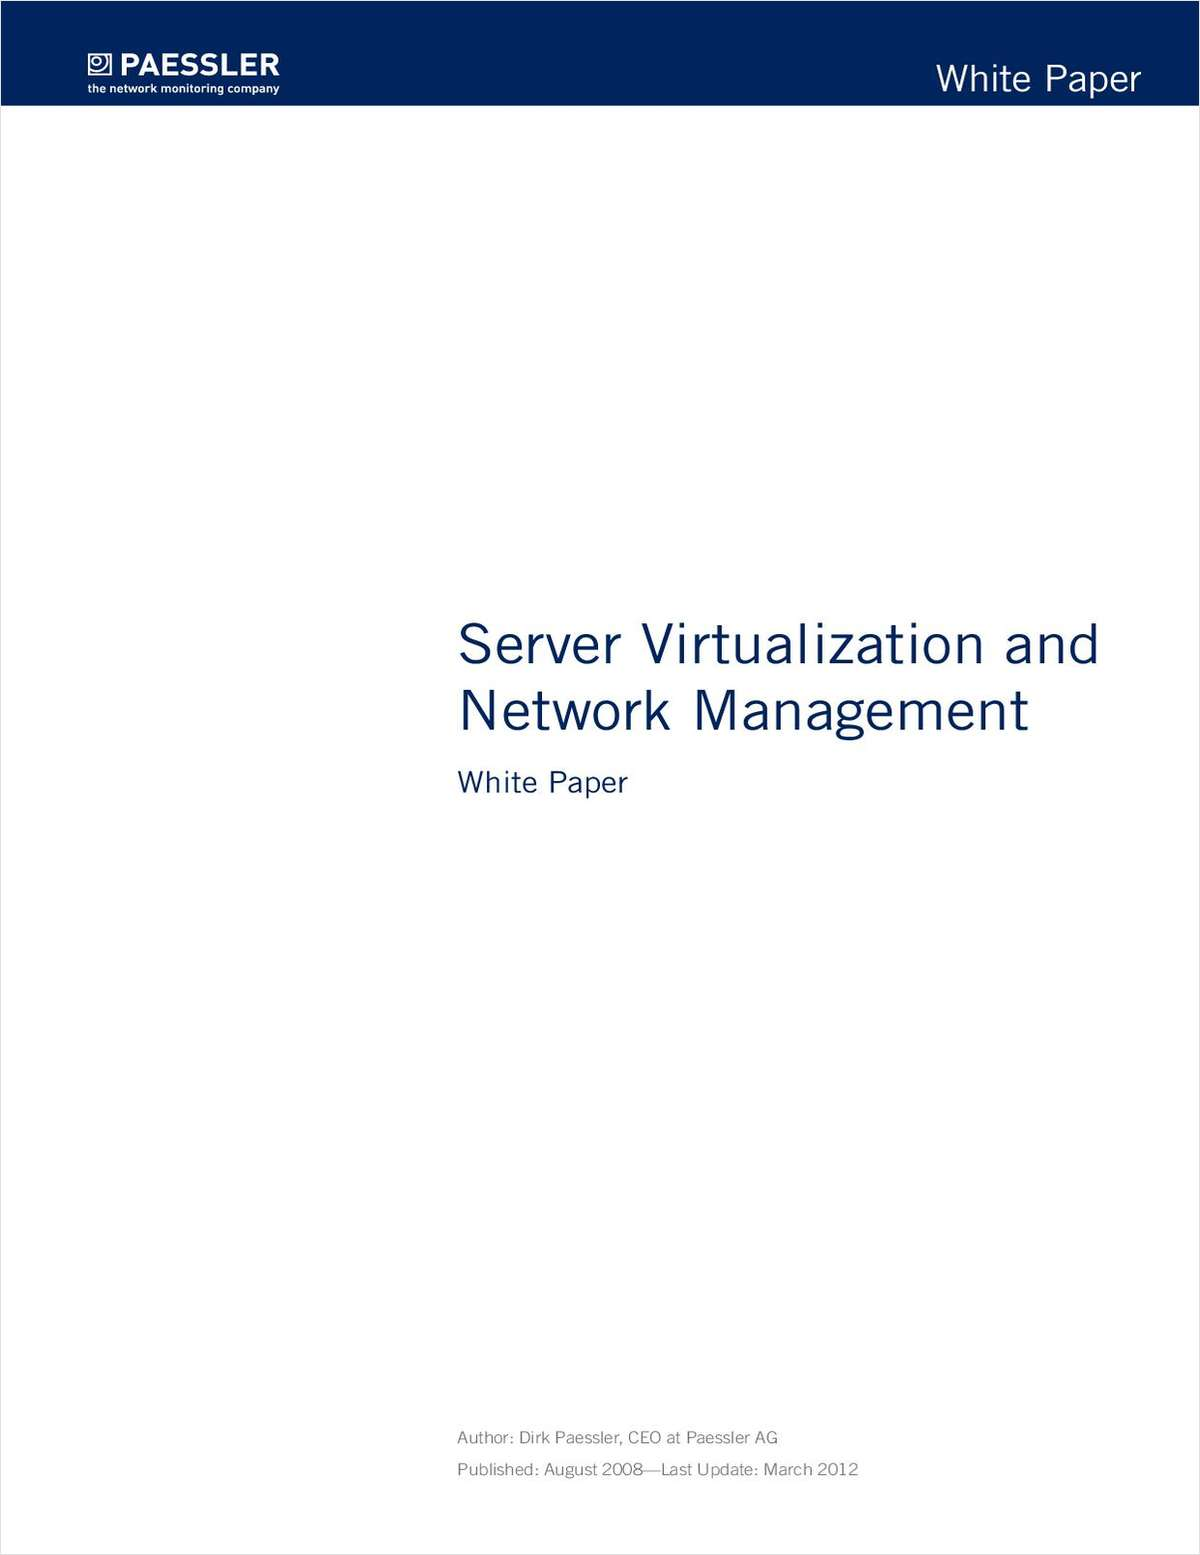 Server Virtualization and Network Management